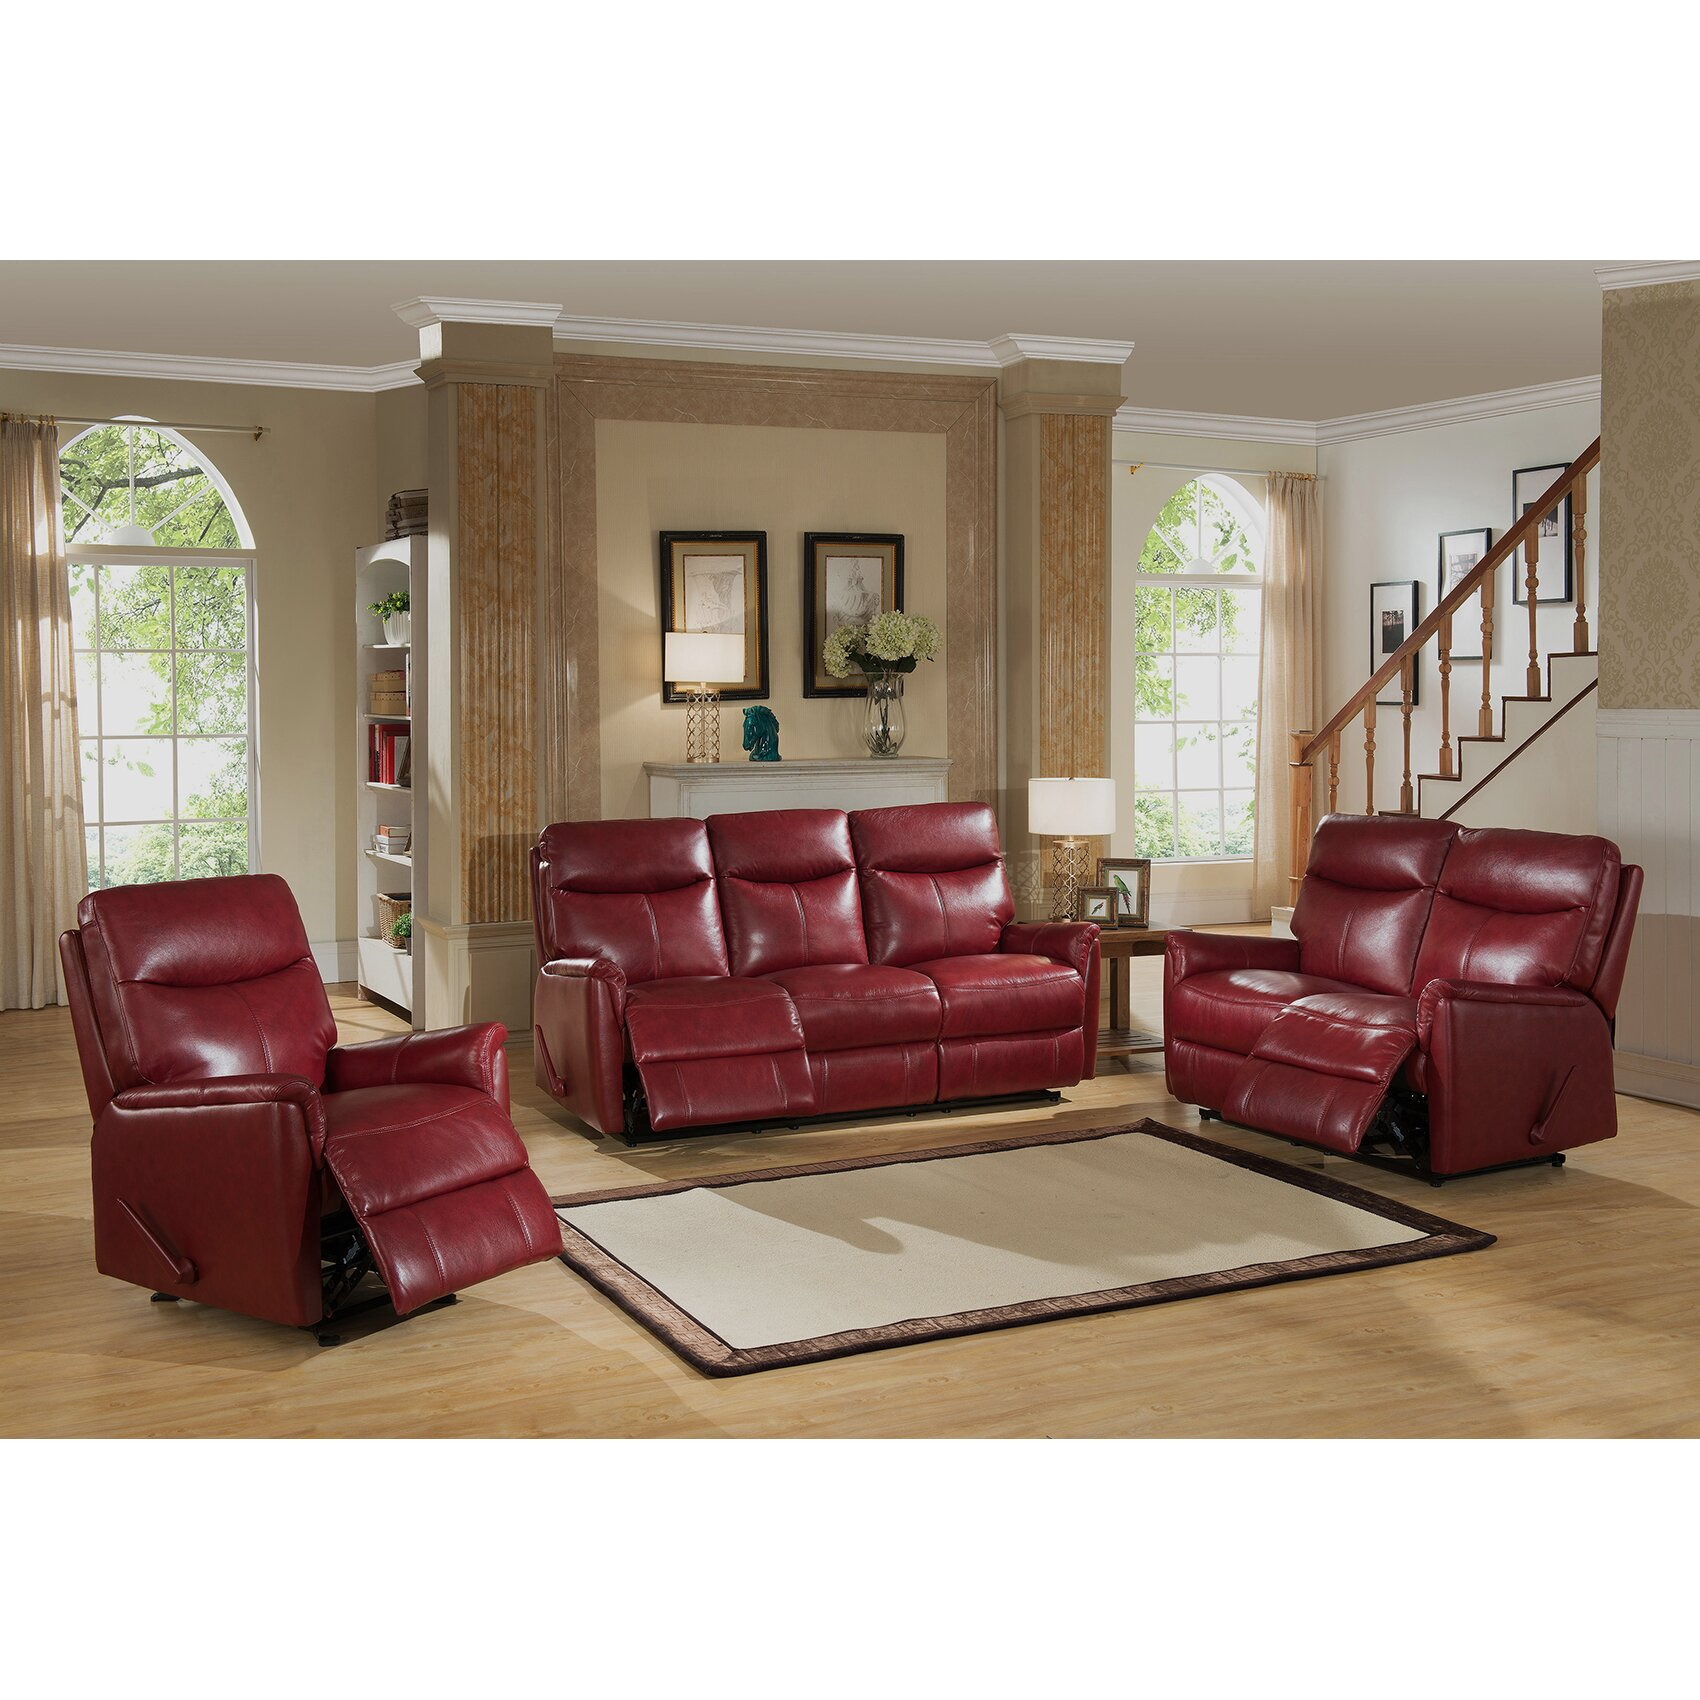 Amax Napa 3 Piece Leather Lay Flat Reclining Living Room